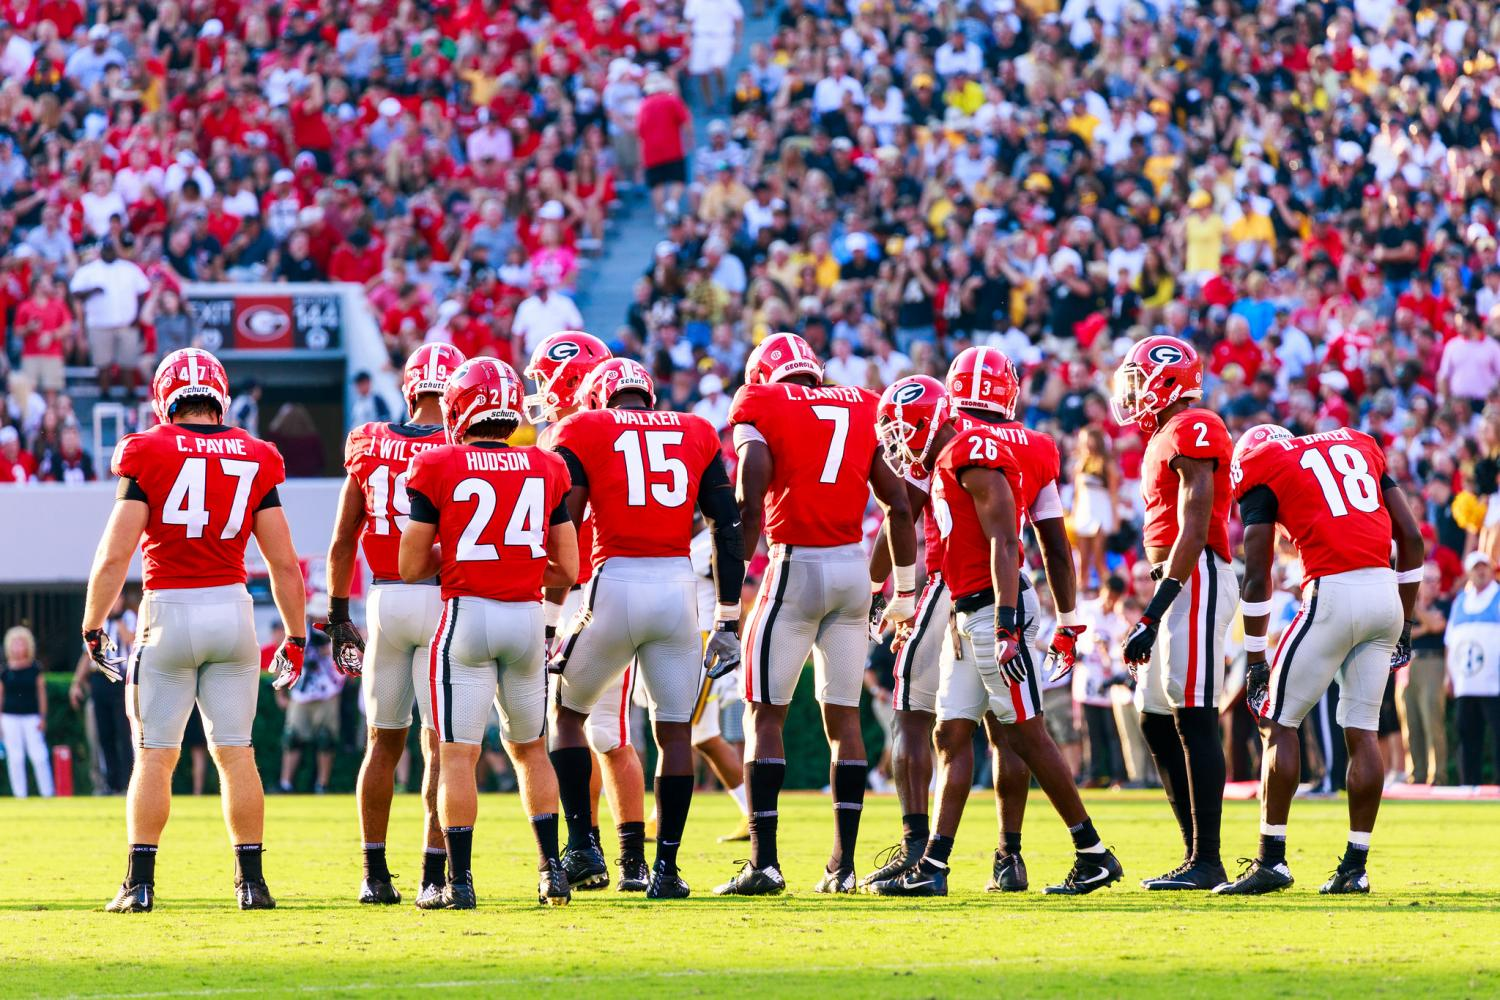 The+Bulldogs+defense+hope+to+rise+to+the+occasion+against+Mississippi+State.+Photo+by%3A+Brandon+Sweeney+